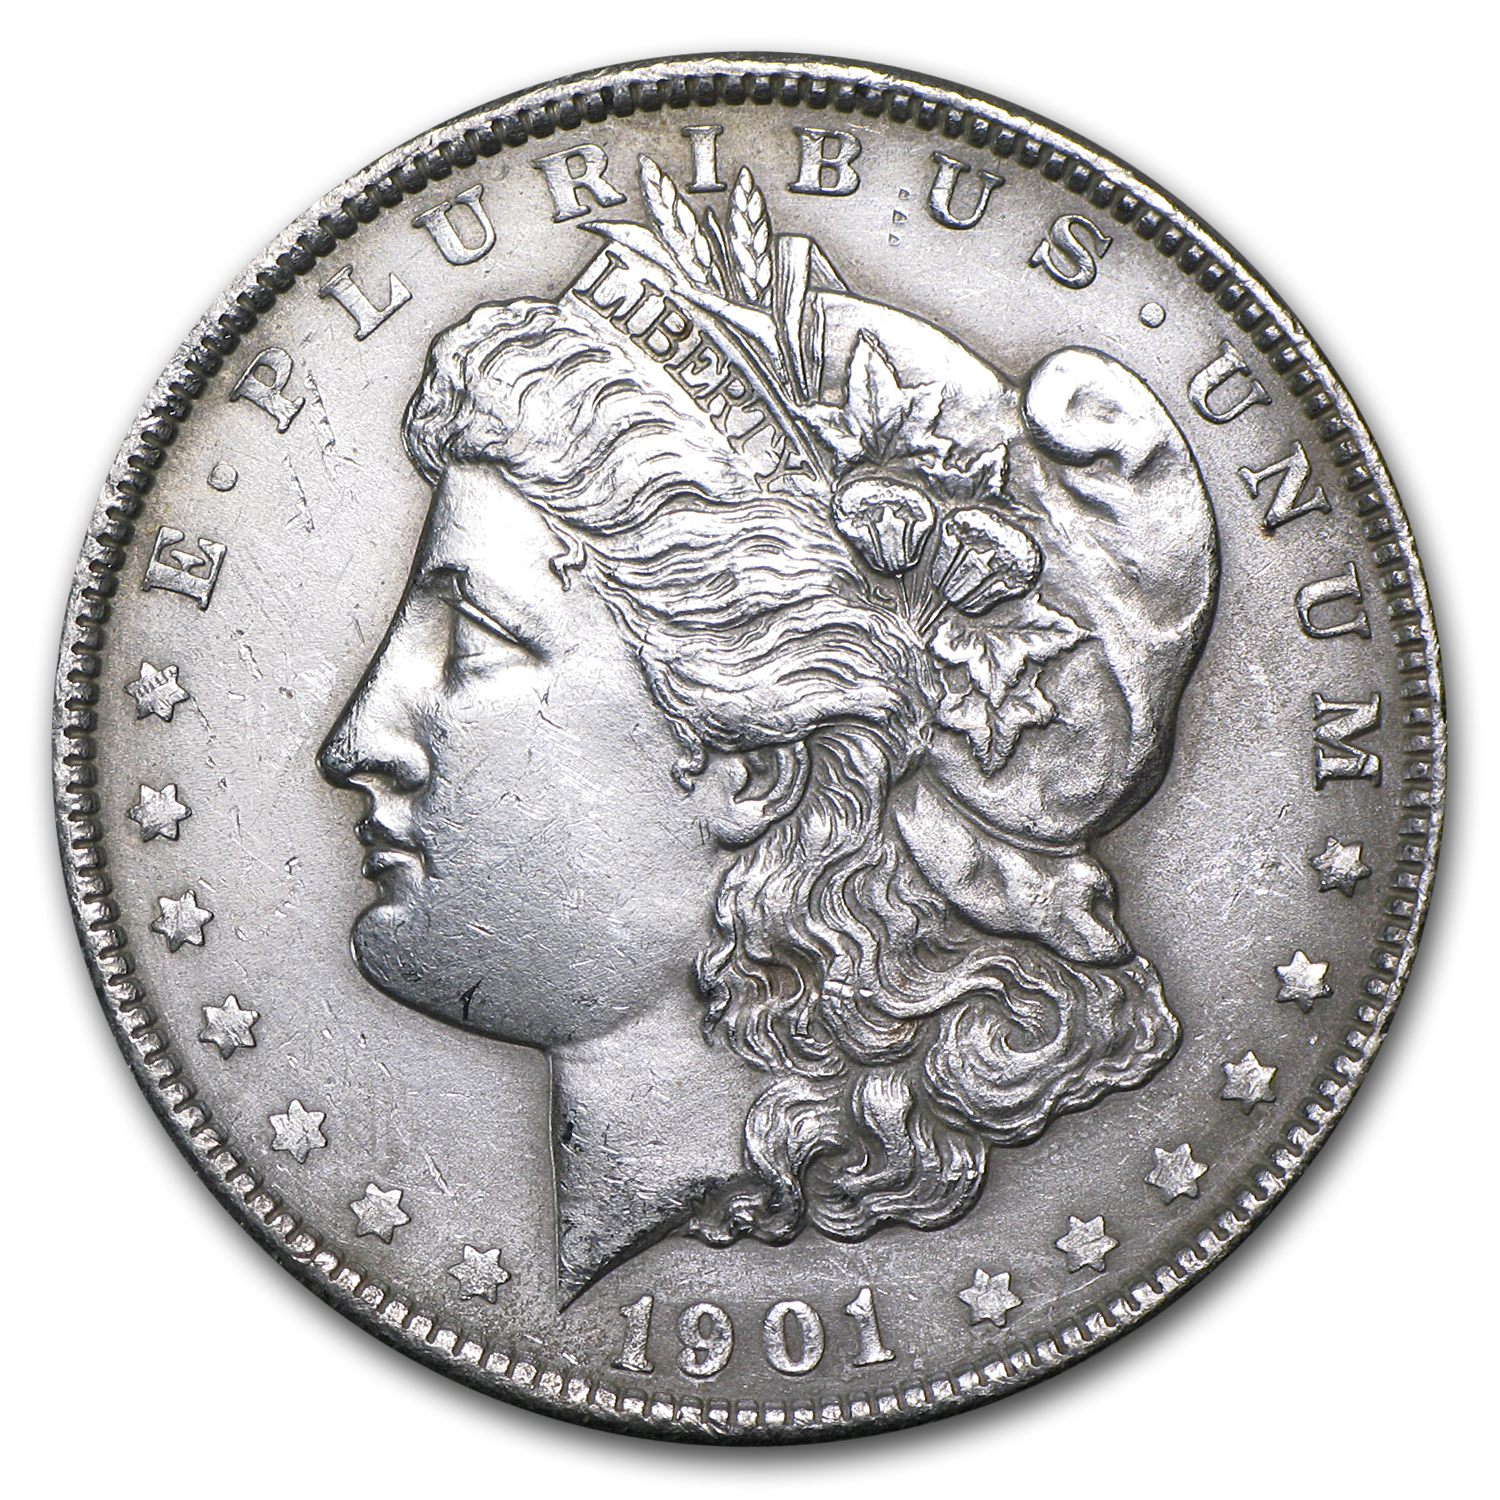 1901 Morgan Dollar BU (Cleaned)